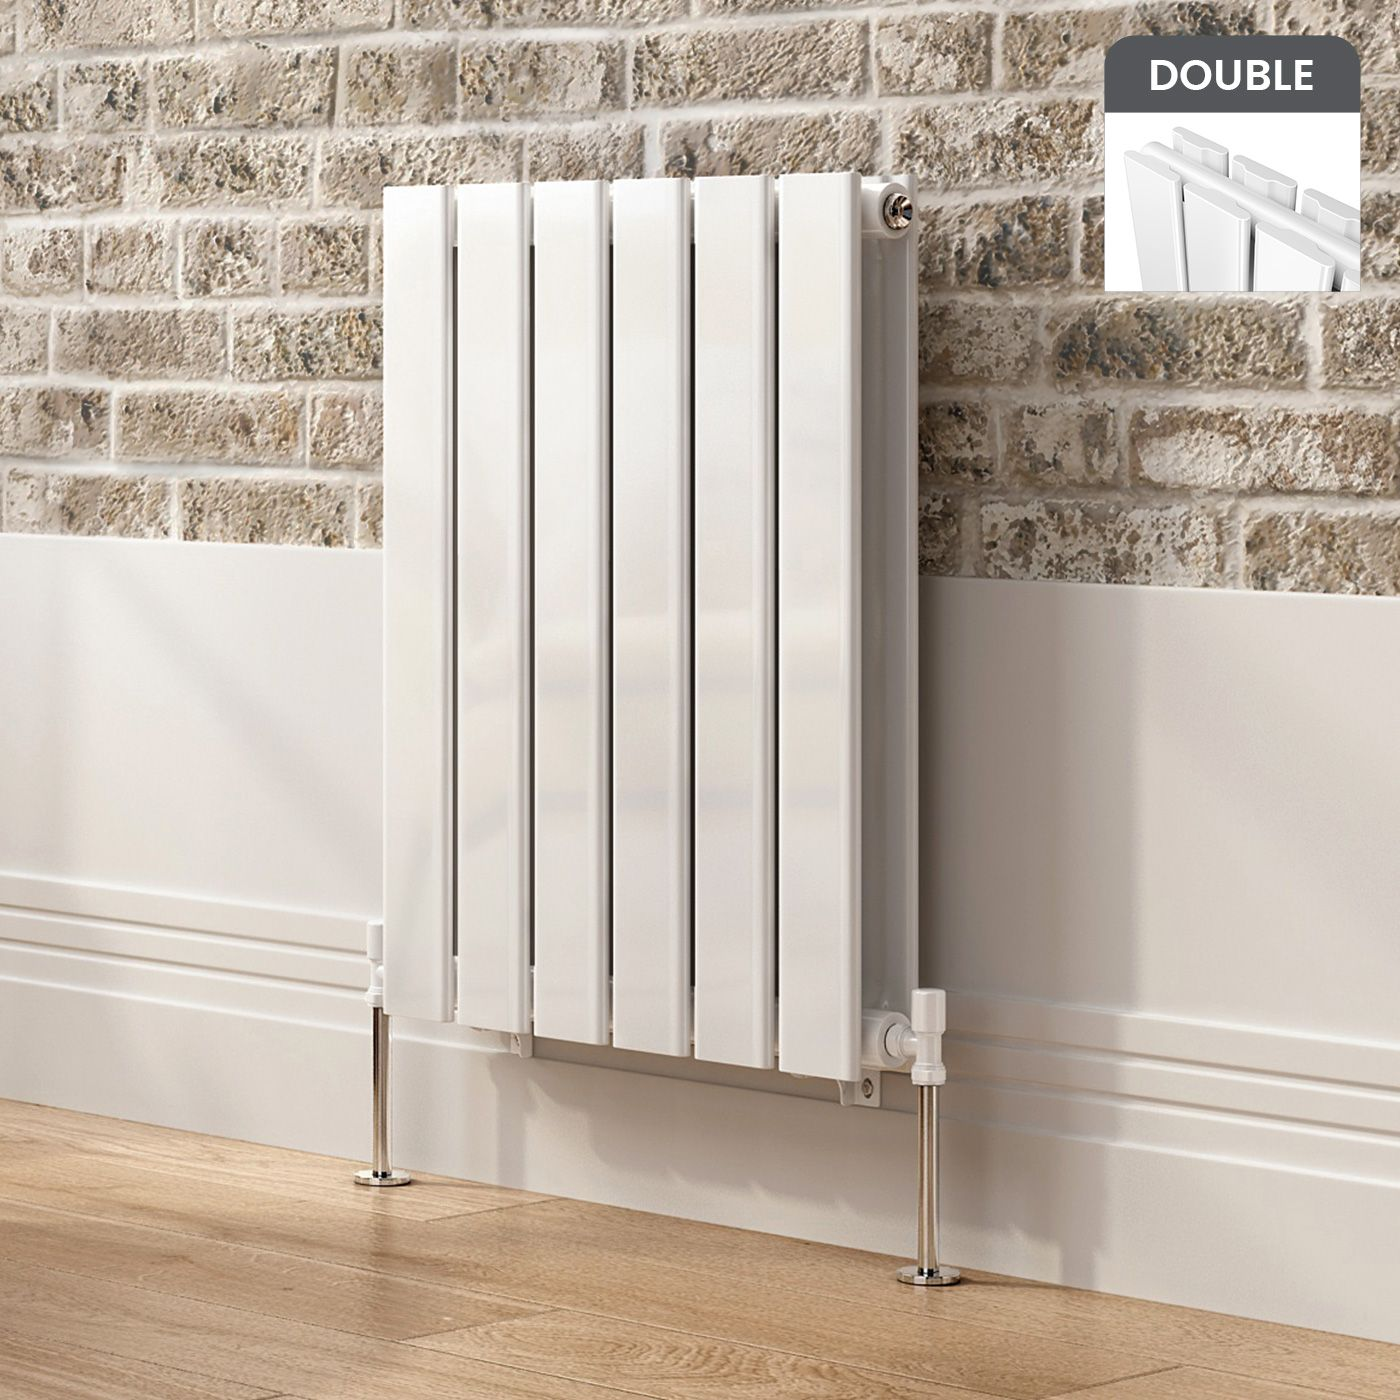 Horizontal Flat Panel Radiator in White 600mmx456mm